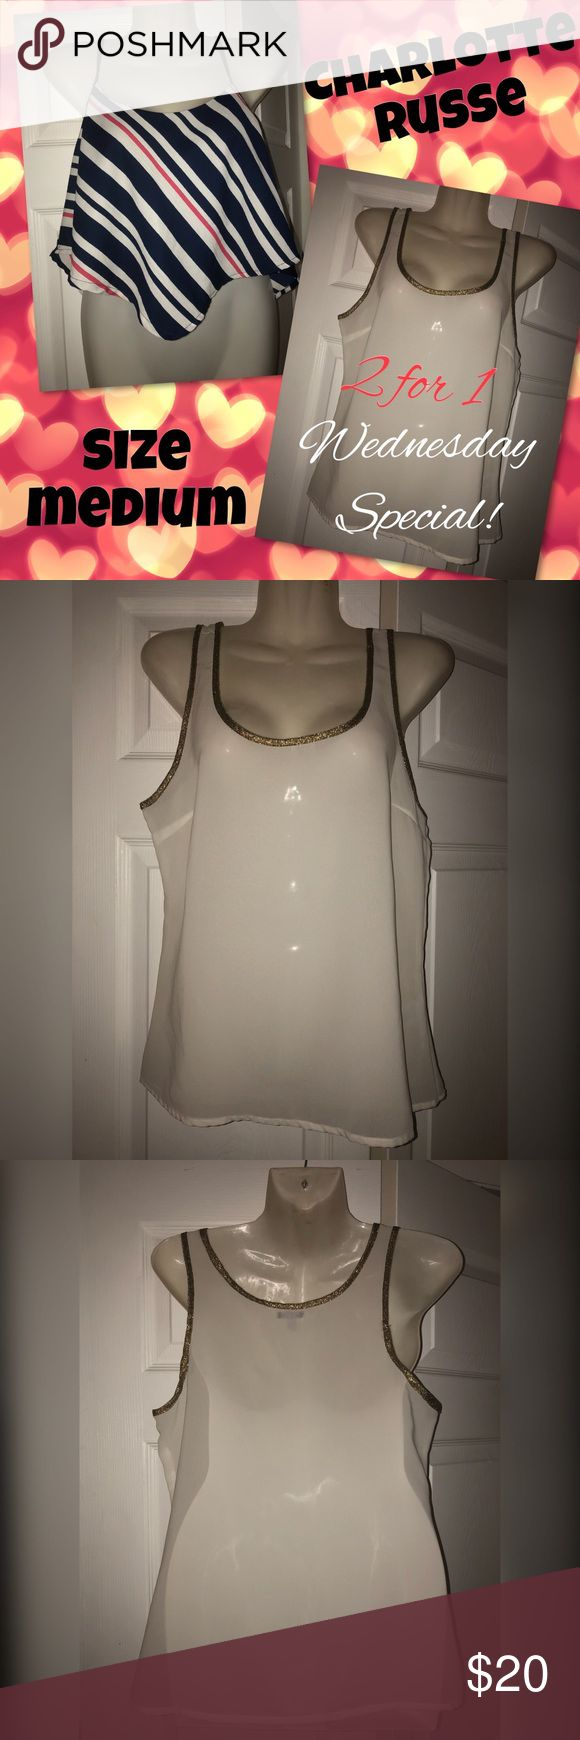 ‼️2for1SALE‼️Two Charlotte Russe Tops Wednesday Special!! Lot of two Charlotte Russe tops both size medium! One is a crop top and the other is a white sheer tank with gold rim, both in perfect condition & only worn once! So cute for the warm weather 💖 Happy Wednesday! Charlotte Russe Tops Crop Tops